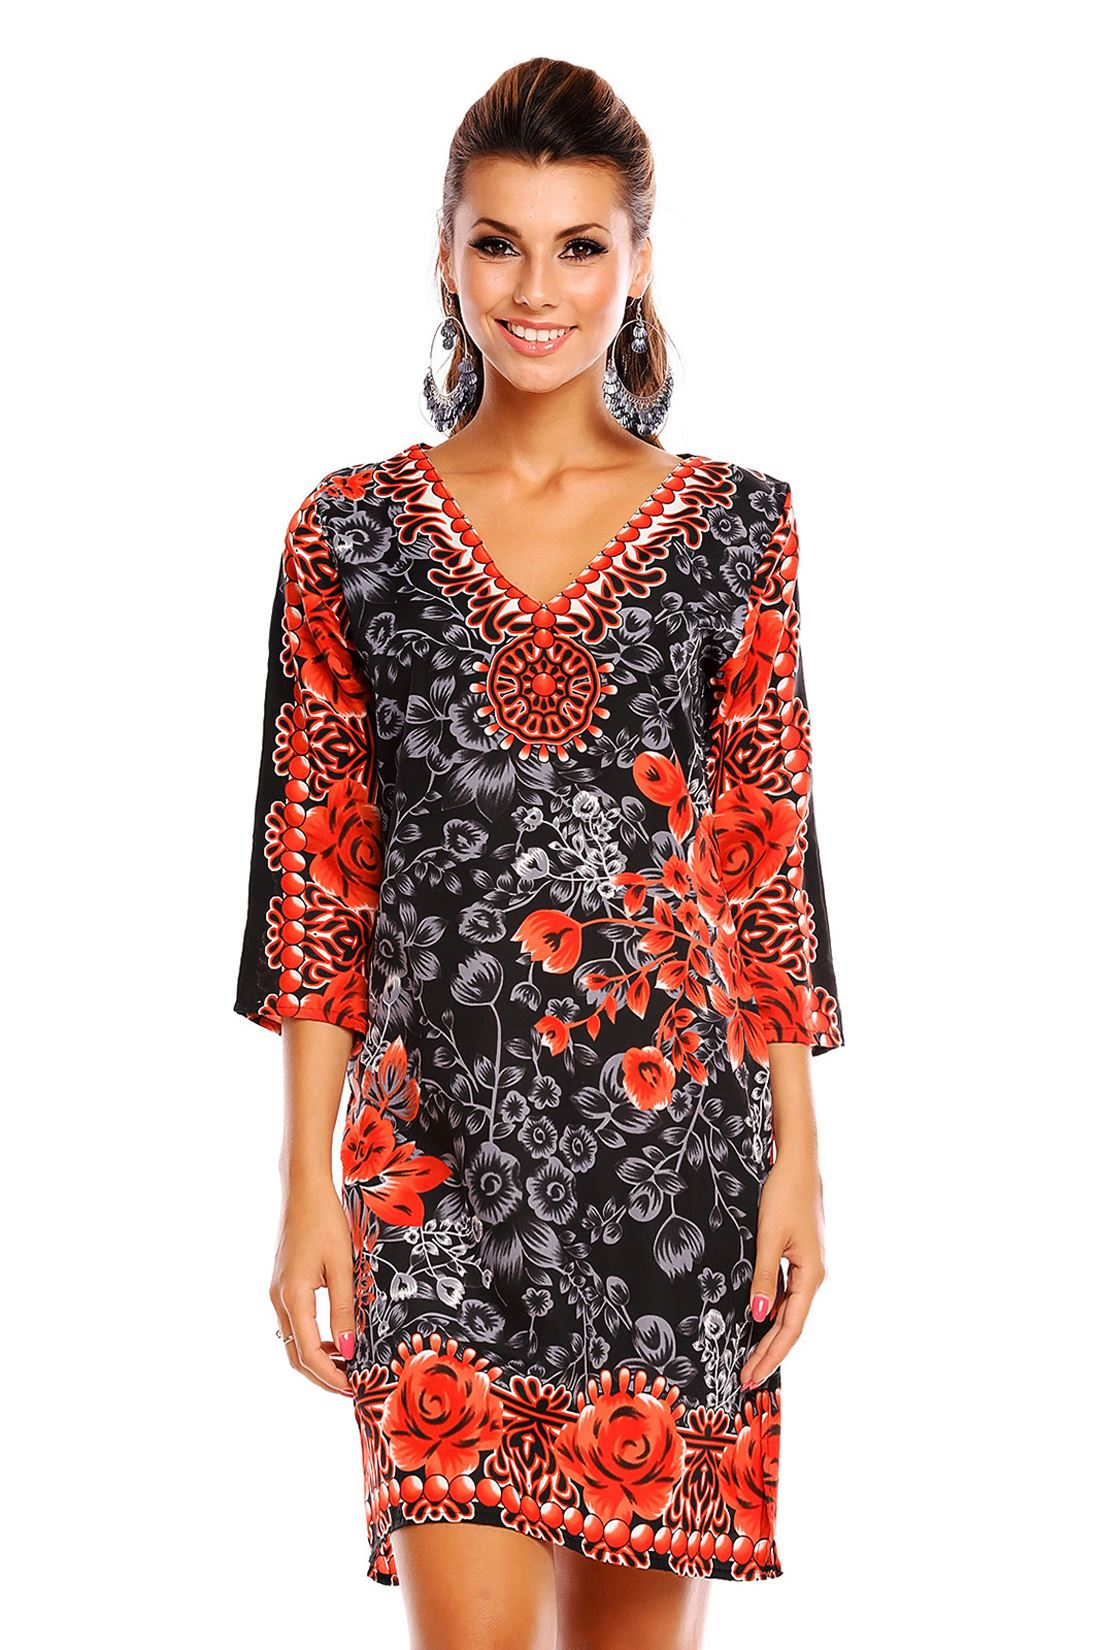 Plus Size Ethnic Clothing Uk